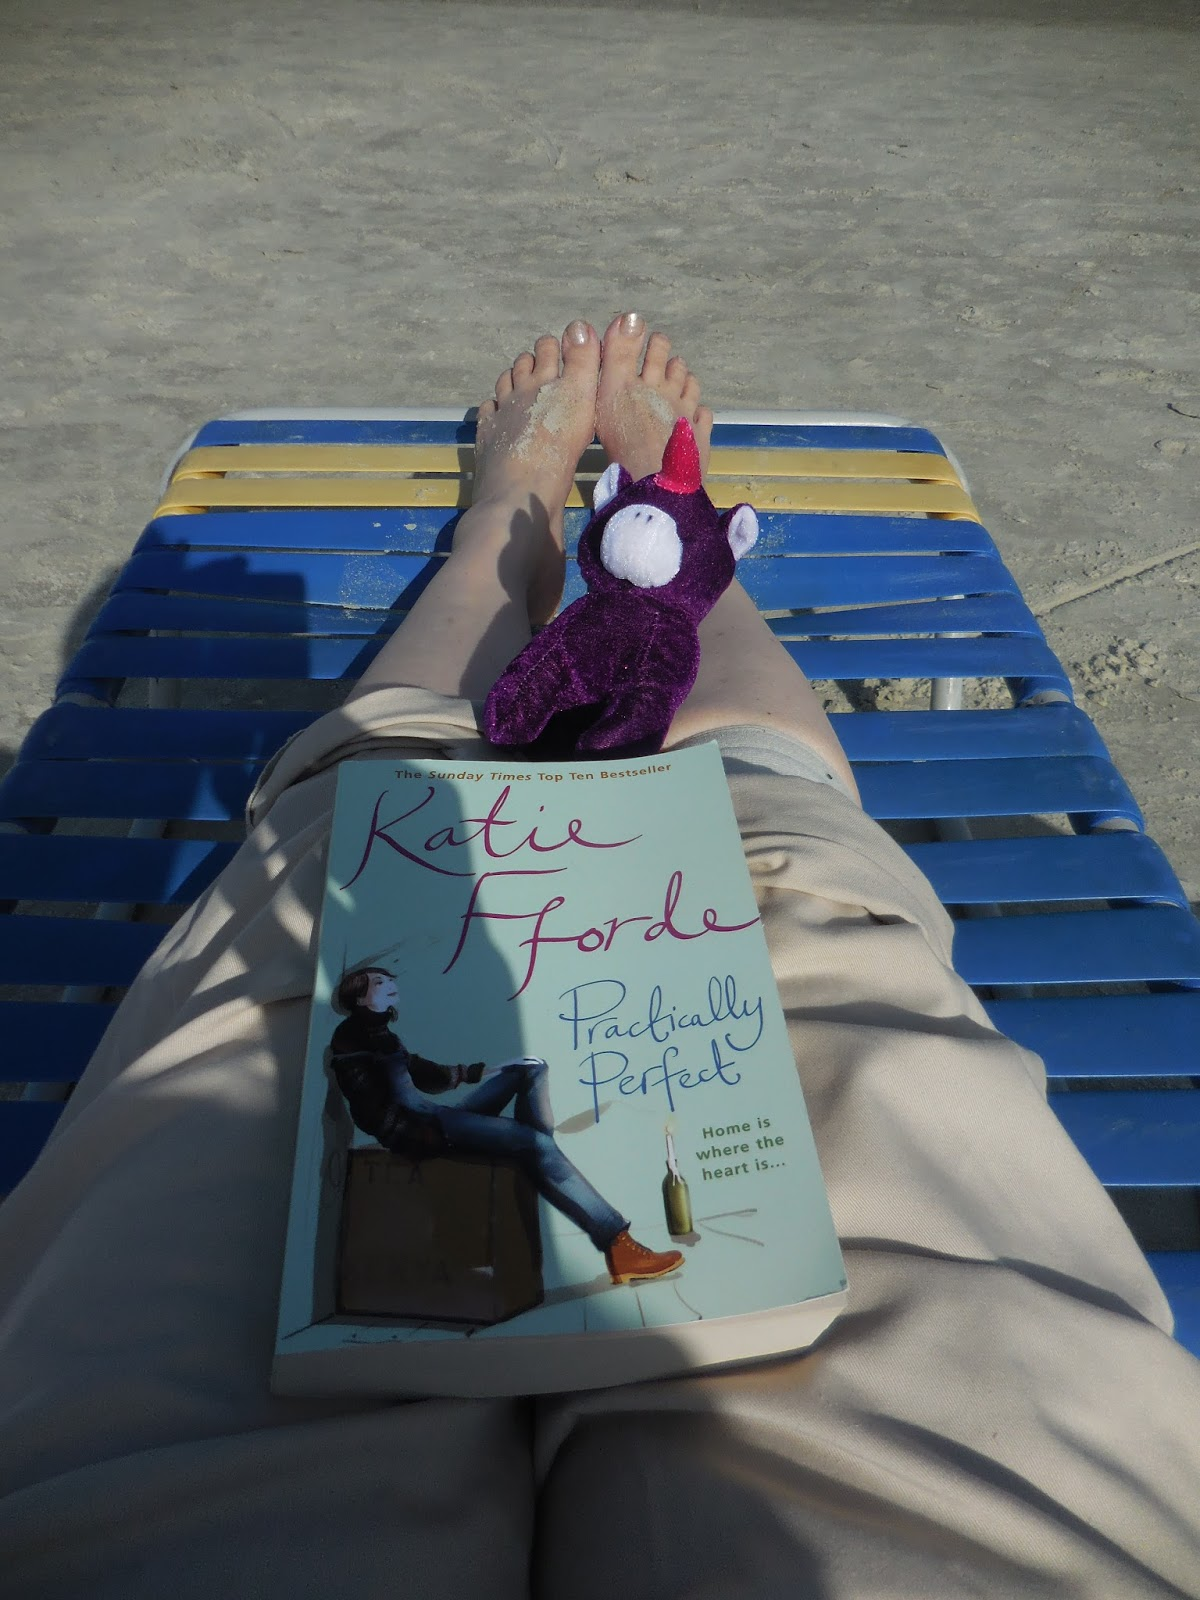 A Katie Fforde Book From Across The Pond And Look Unicorn